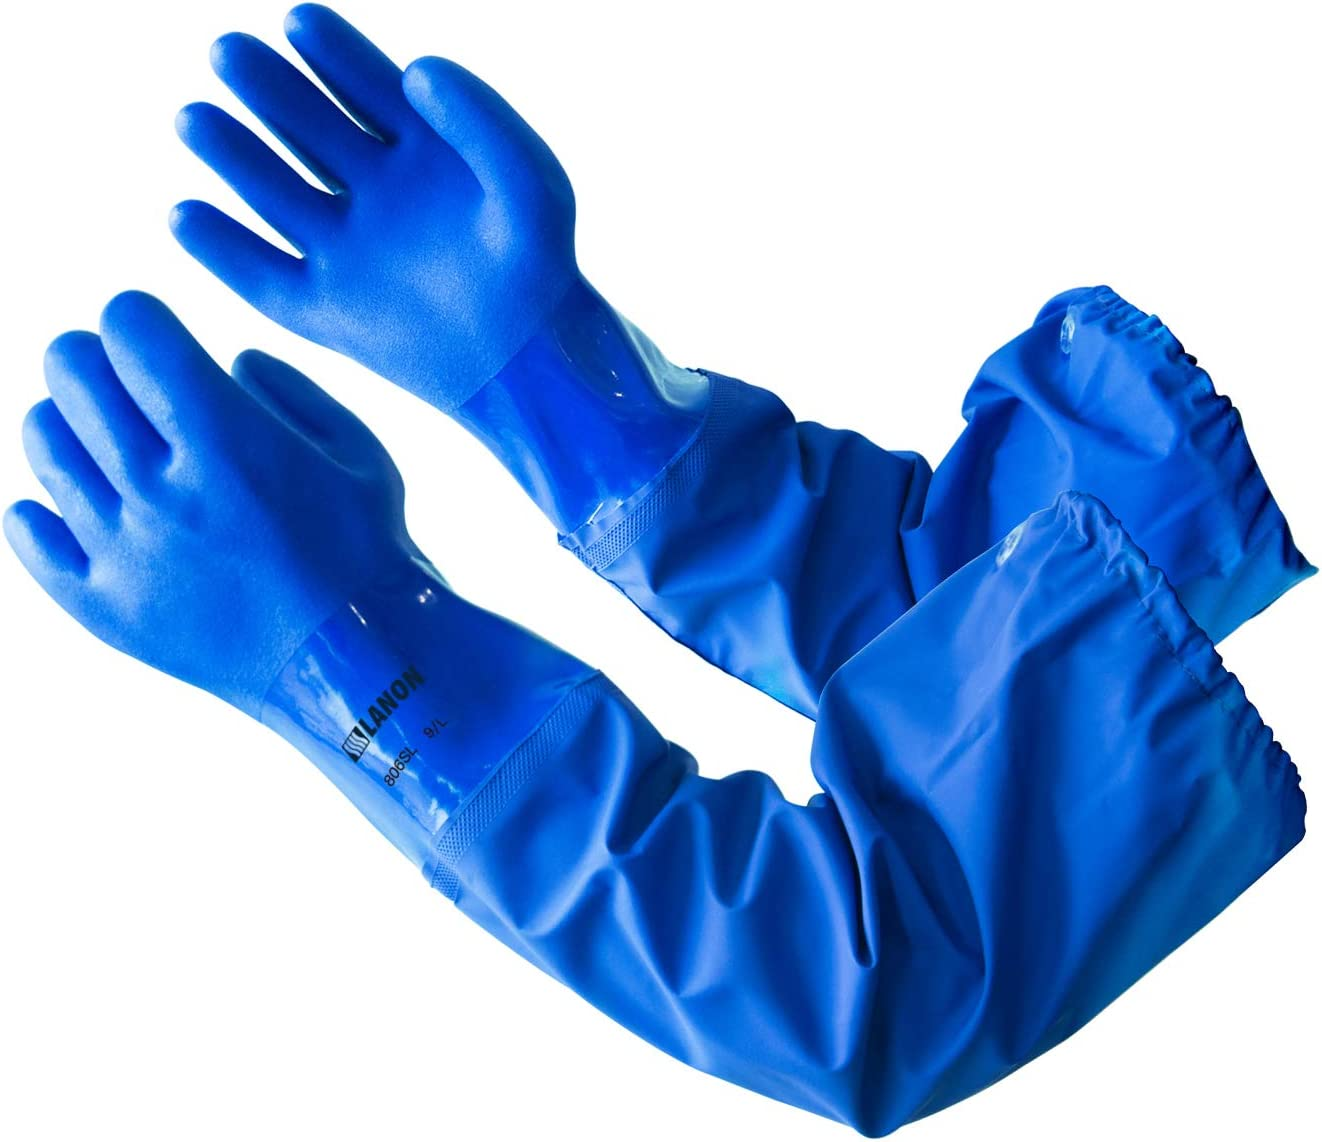 Fashionable LANON 3 Pairs PVC Coated Chemical Gloves Reusable Superior Hea Resistant